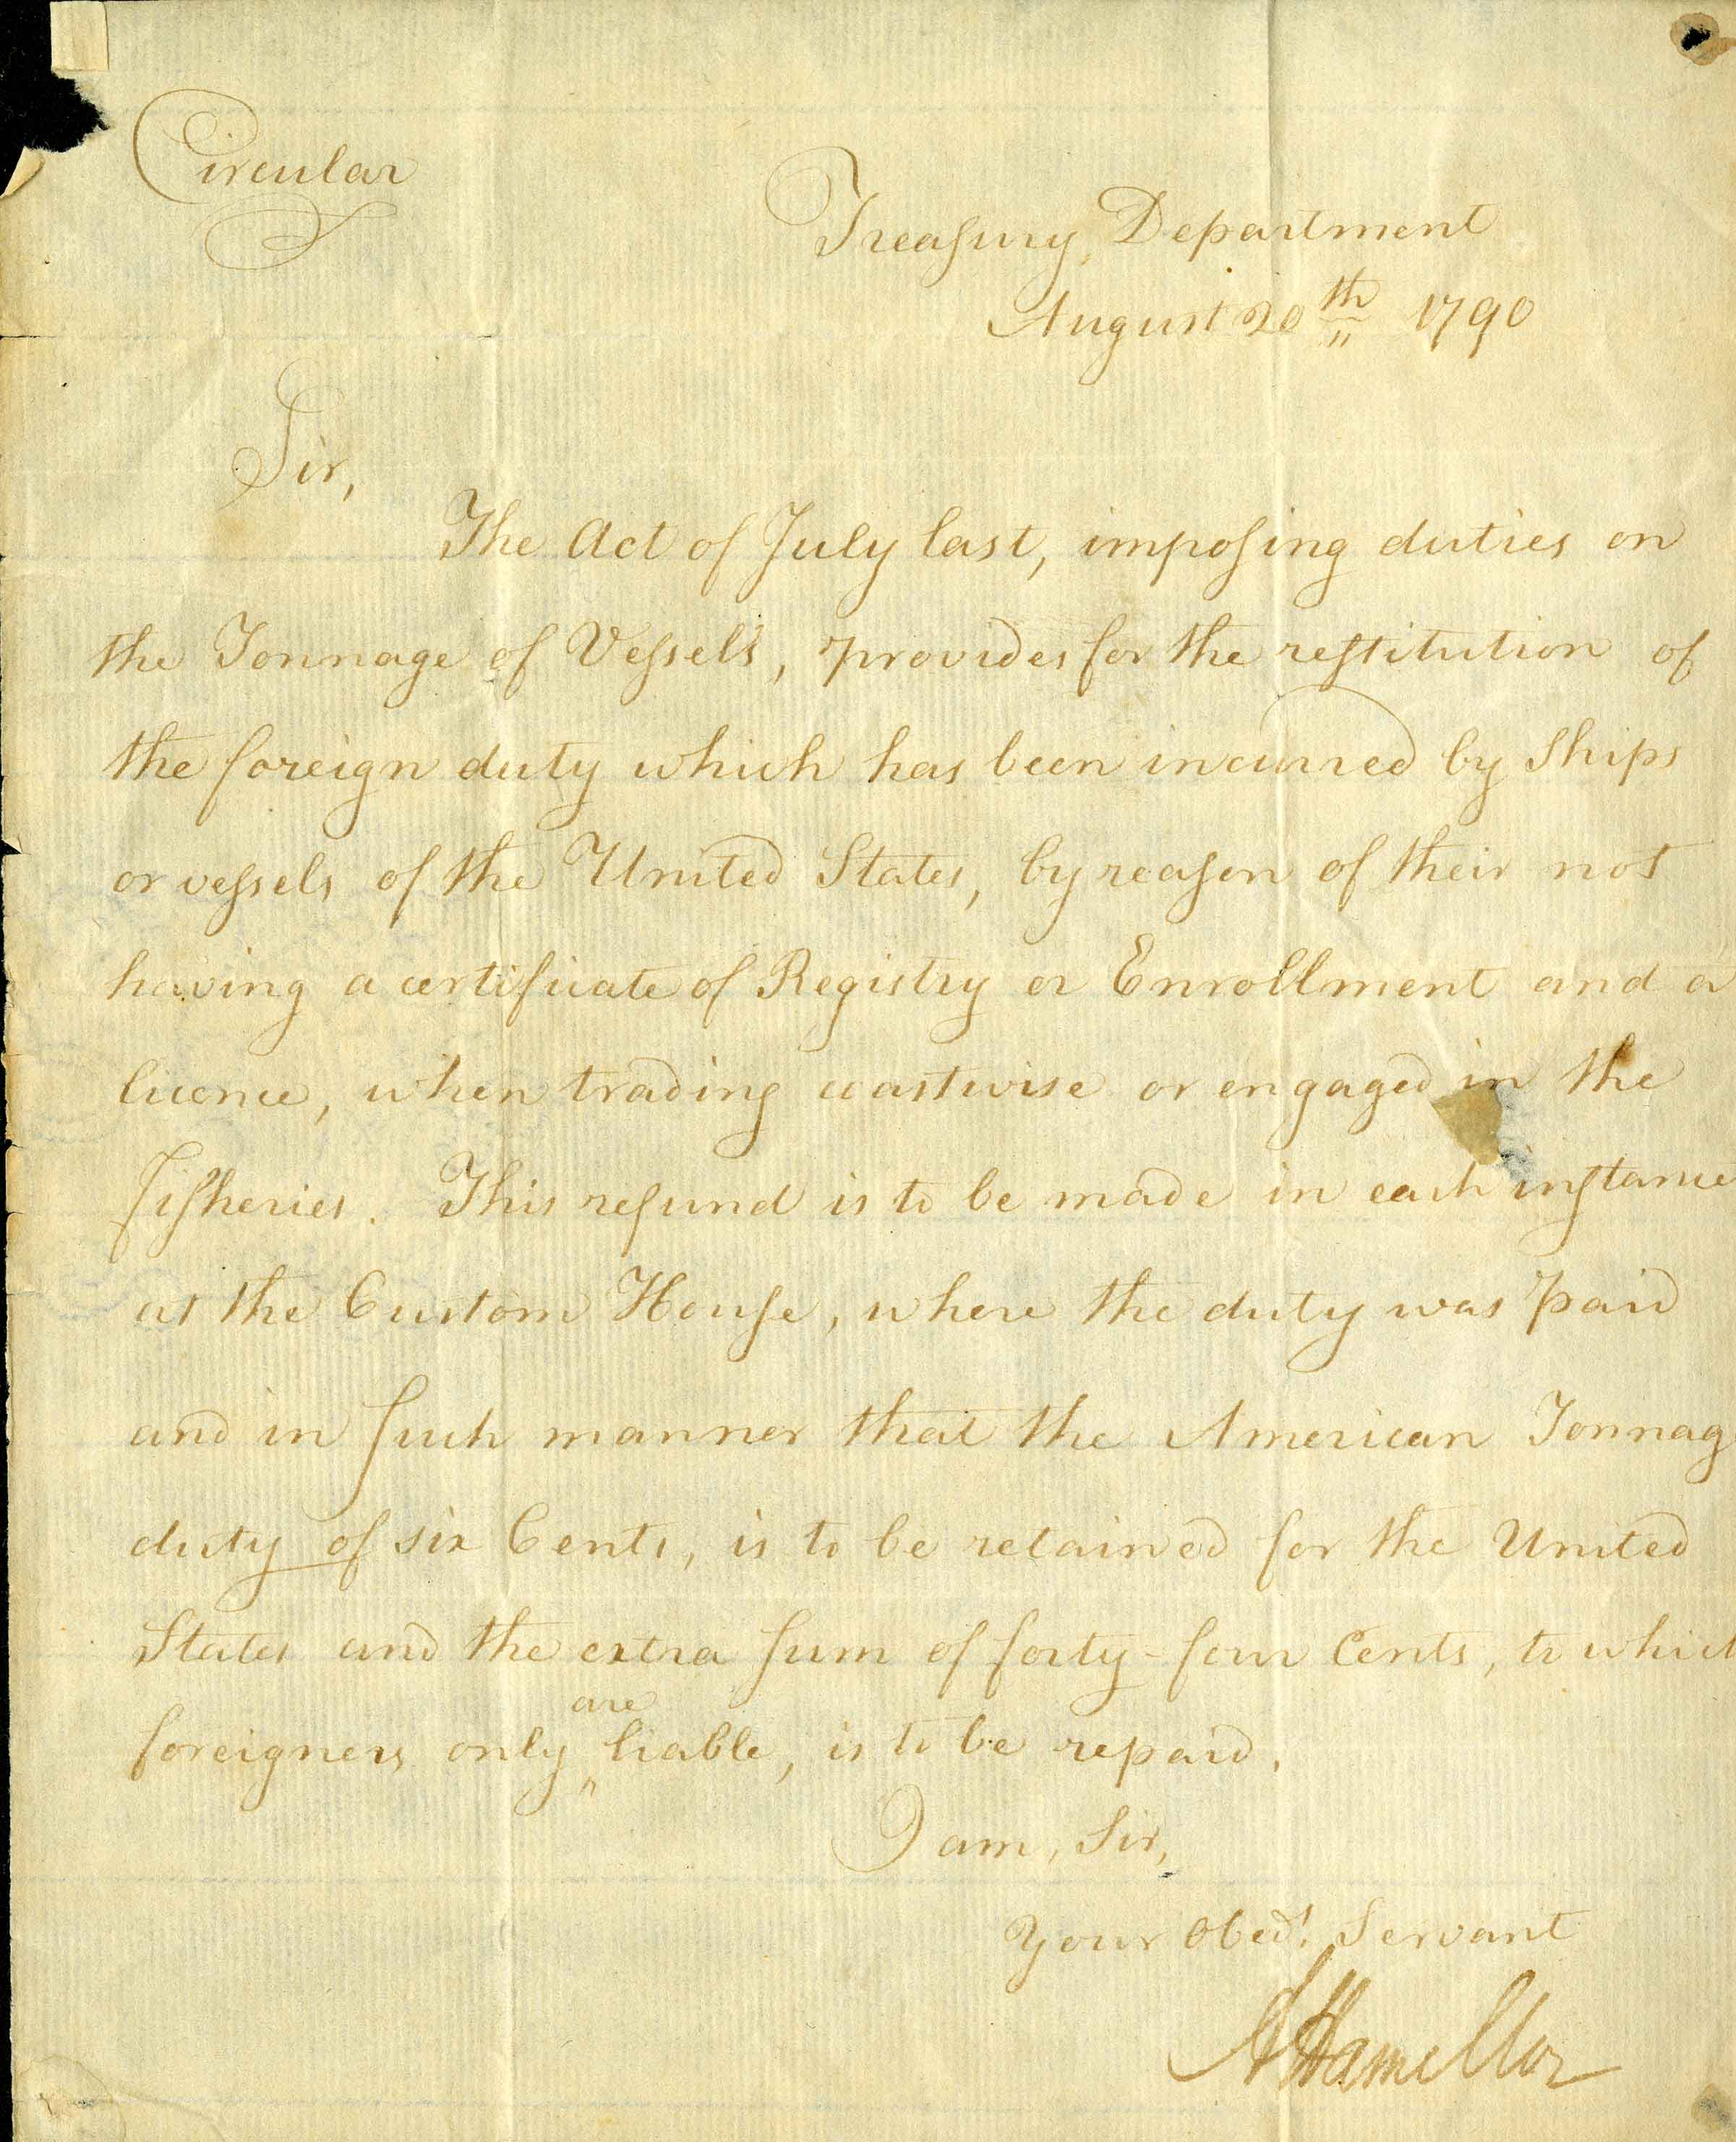 1790 Letter from the Treasury Department, signed by Alexander Hamilton. From the Gaines Collection of Americana.